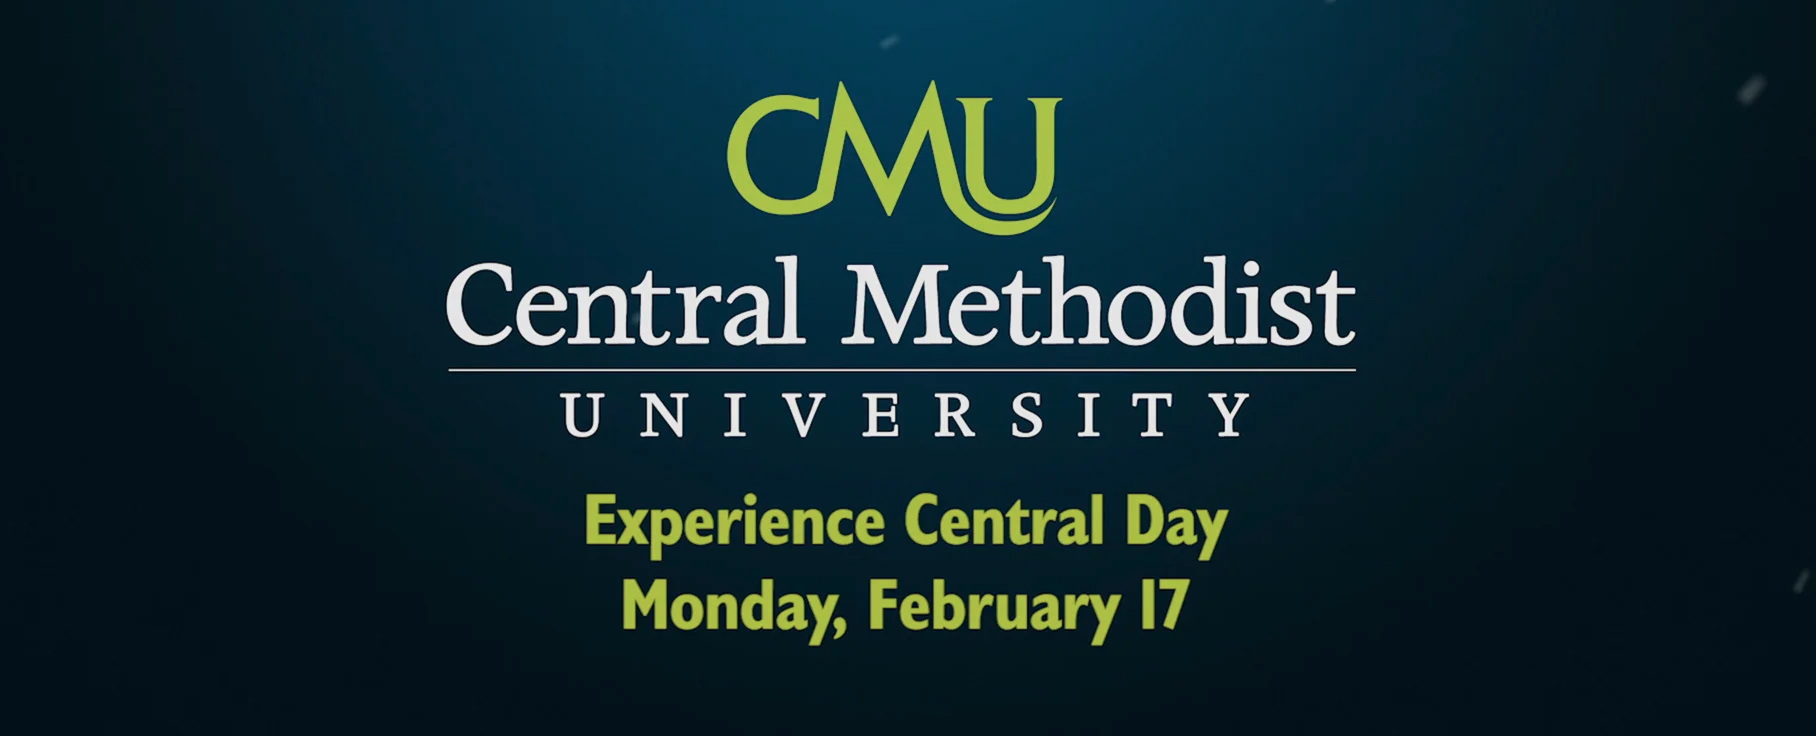 Experience Central Day